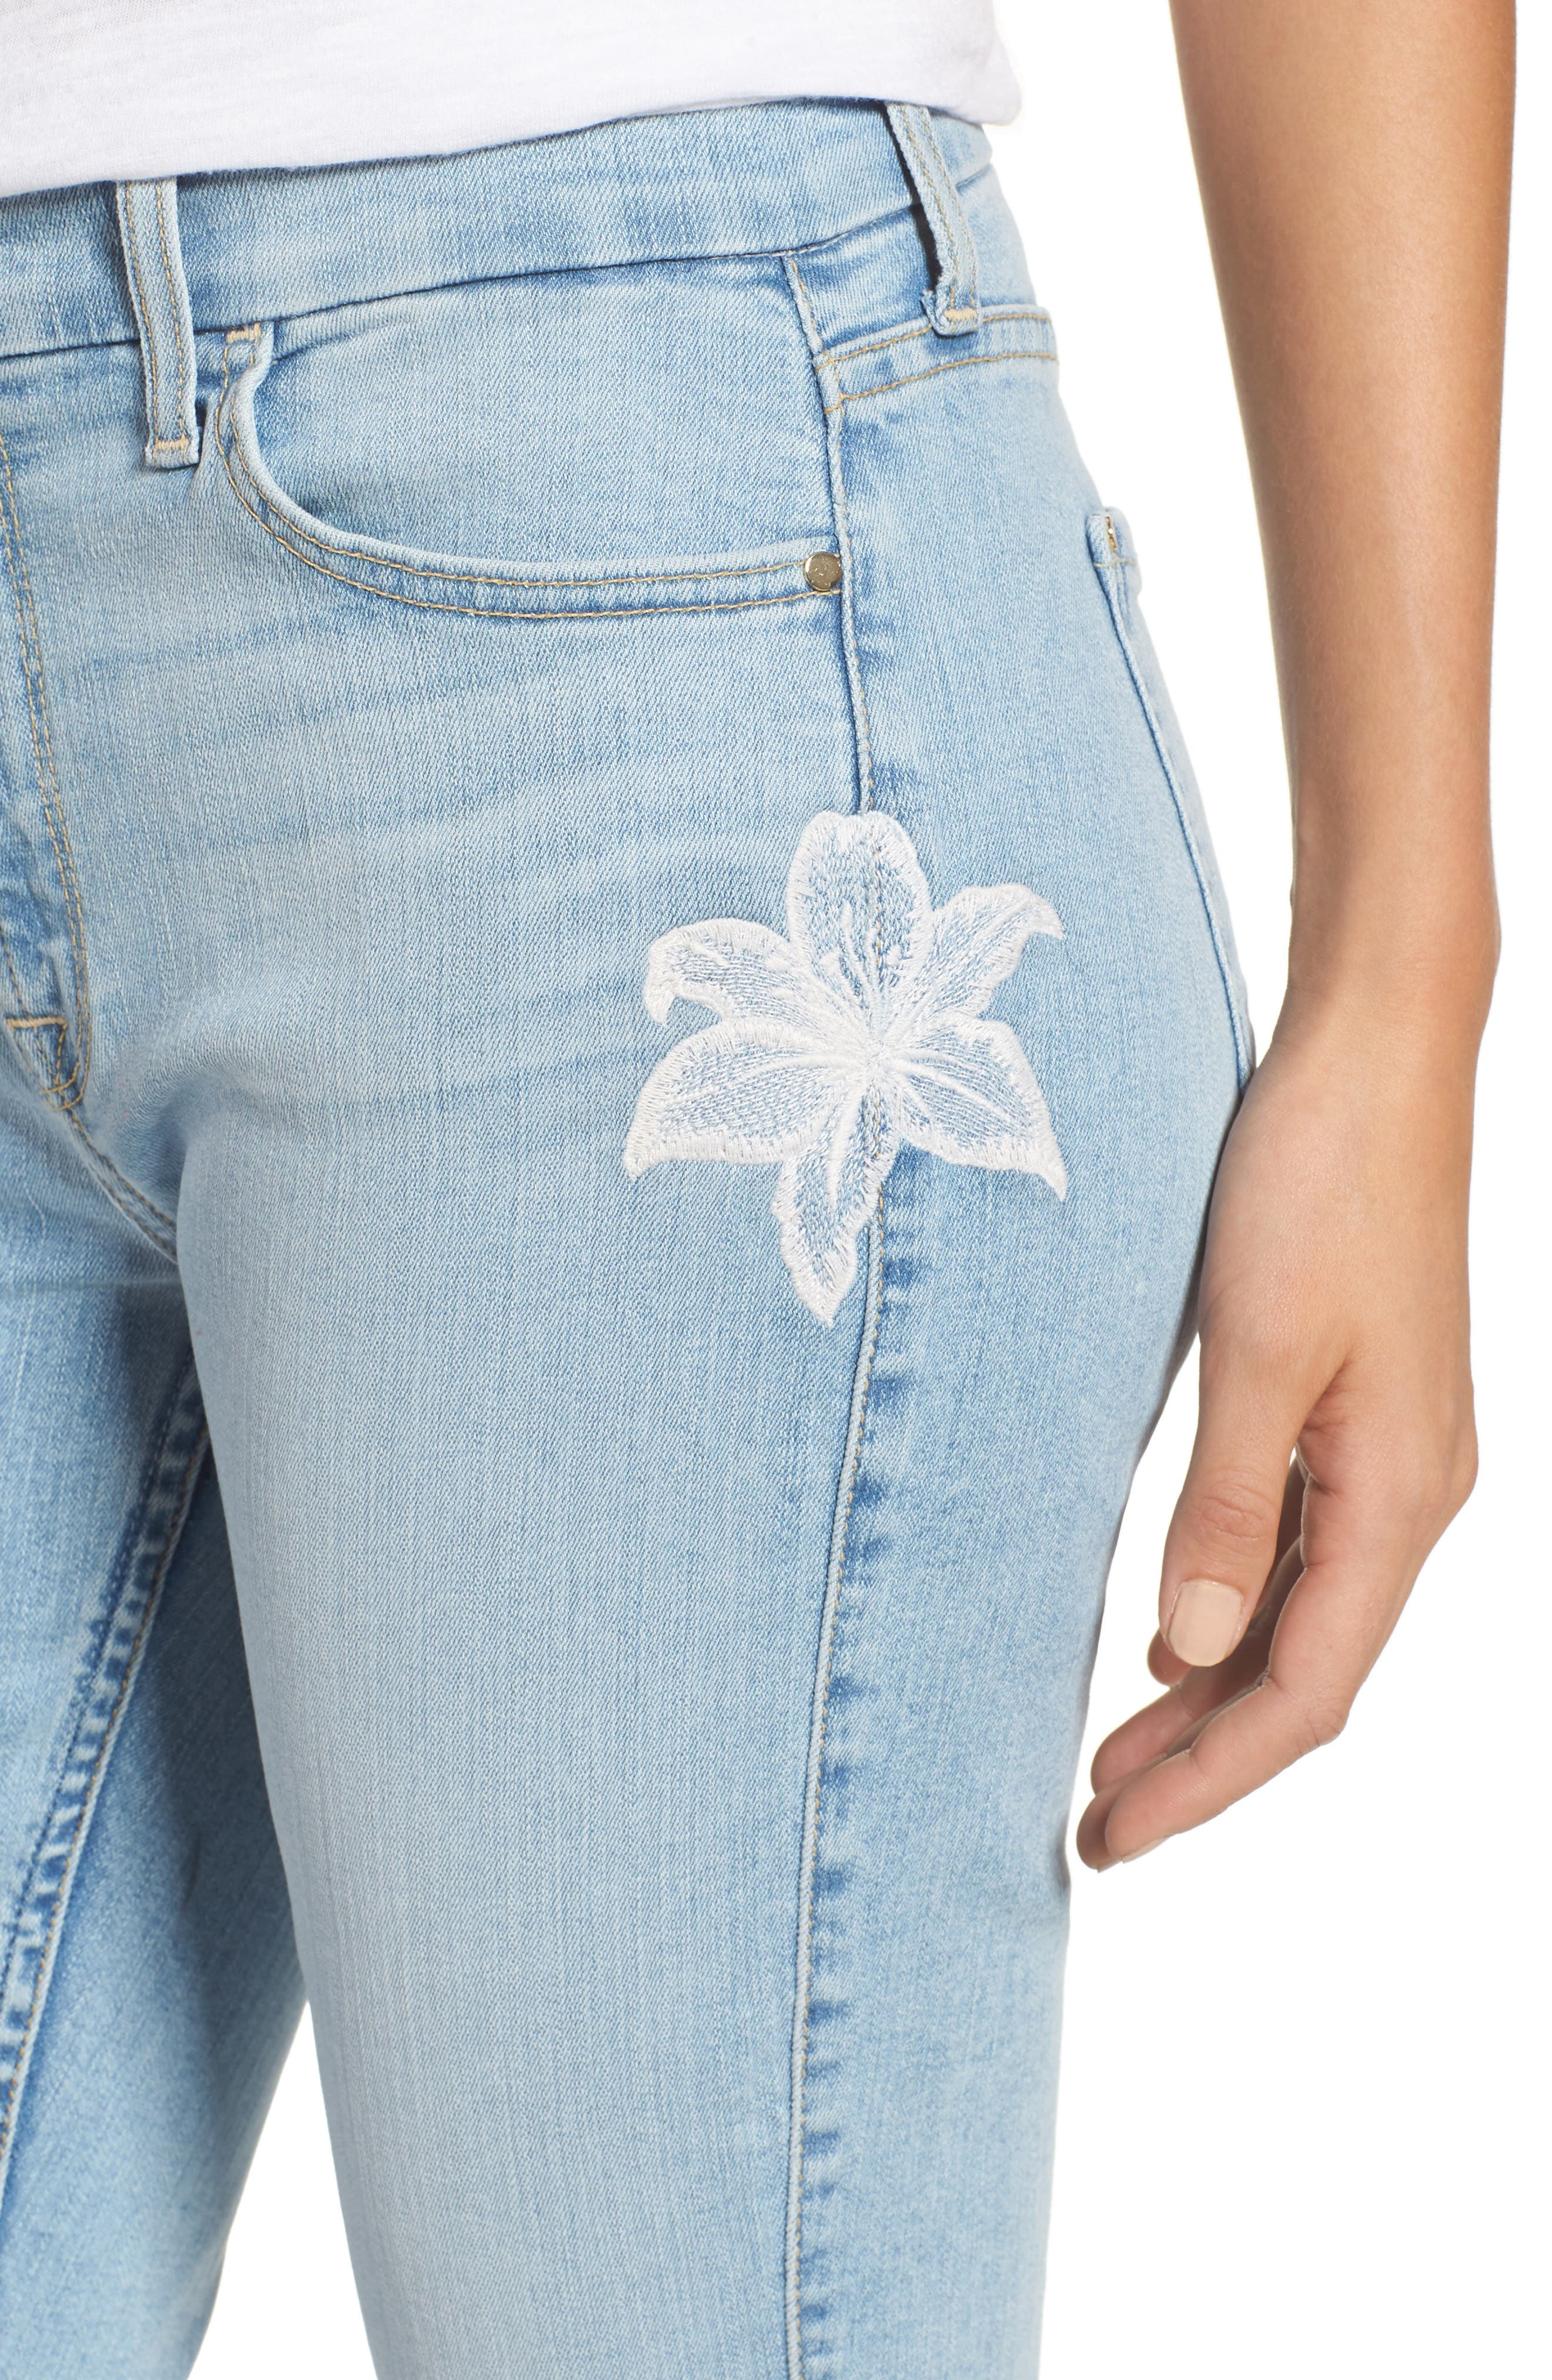 JEN7 BY 7 FOR ALL MANKIND, Embroidered Stretch Ankle Skinny Jeans, Alternate thumbnail 5, color, RICHE TOUCH PLAYA VISTA